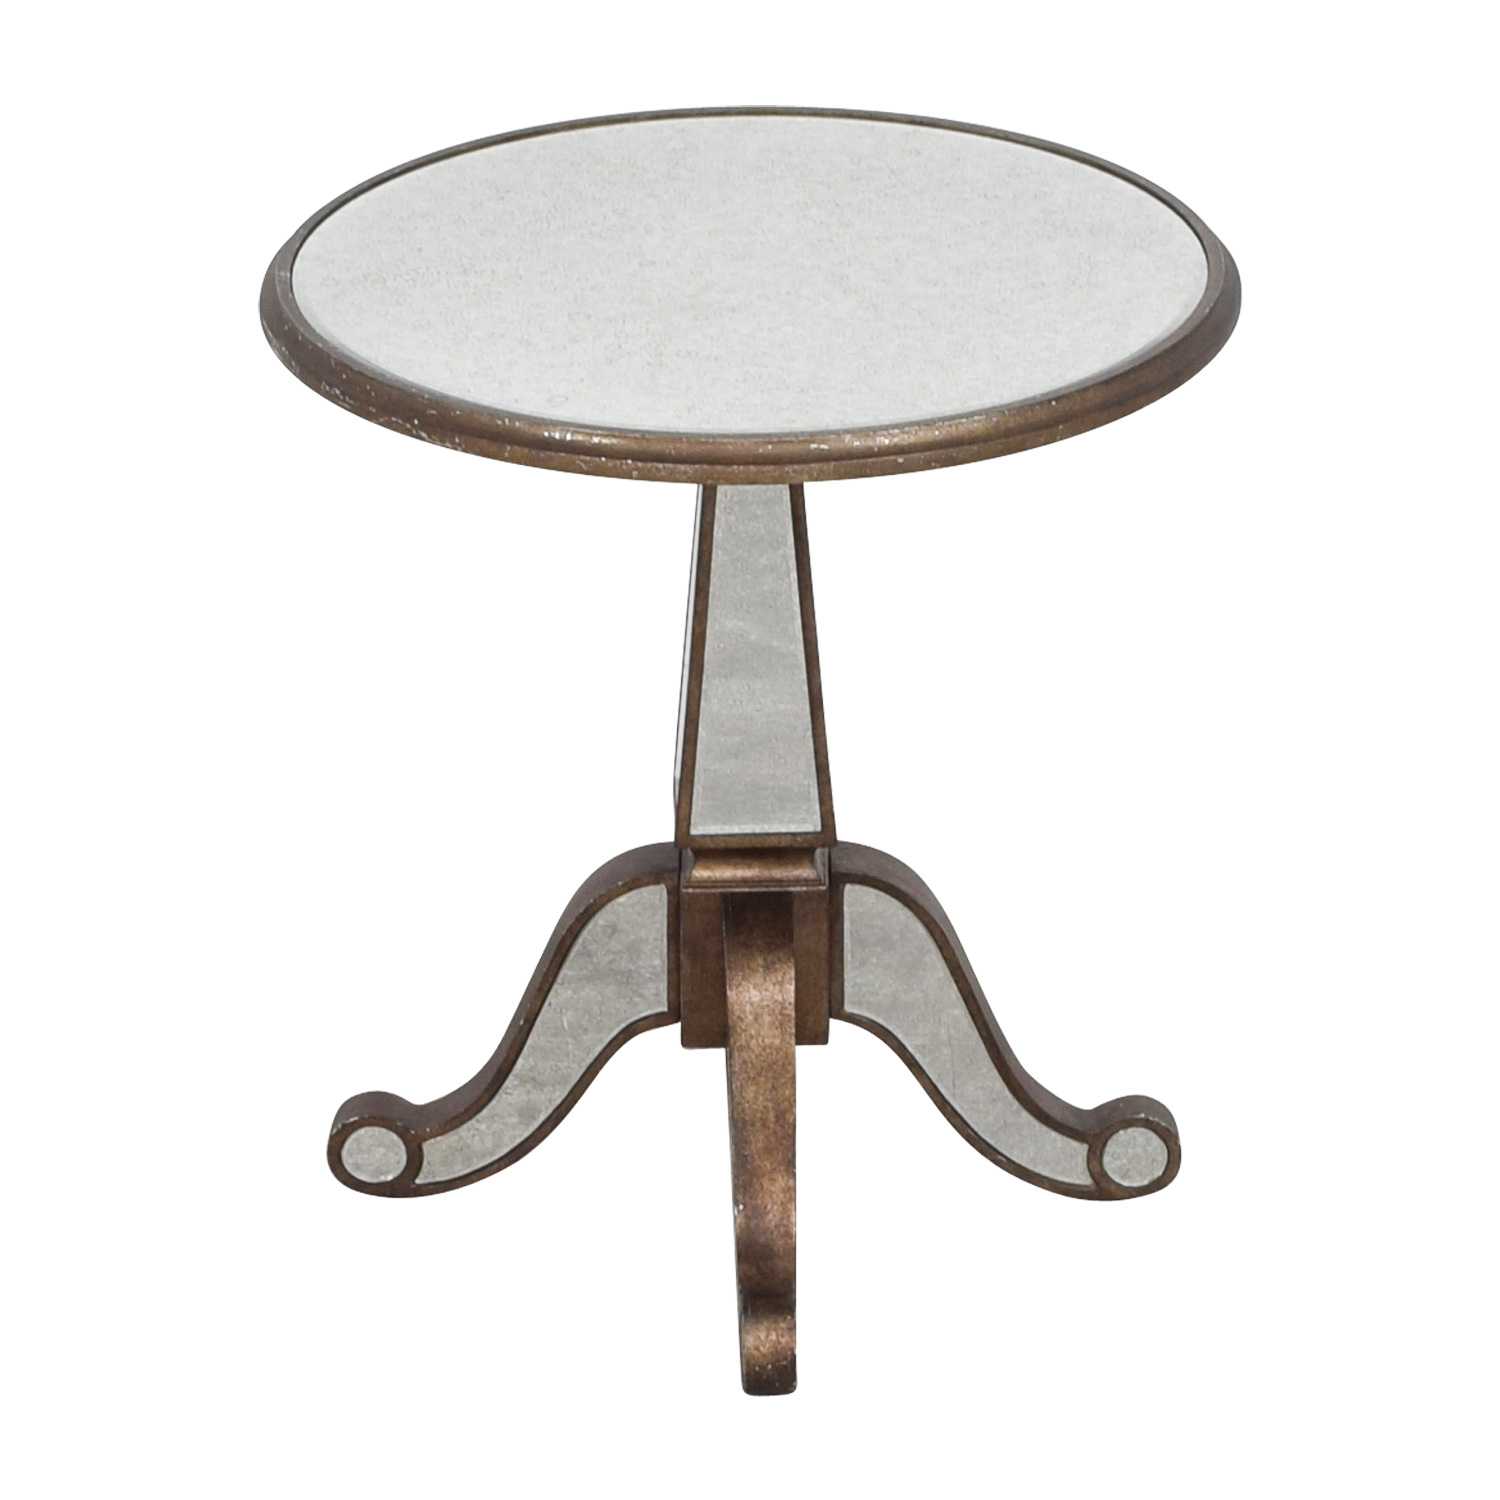 Horchow Michelle Round Mirrored Table / Accent Tables